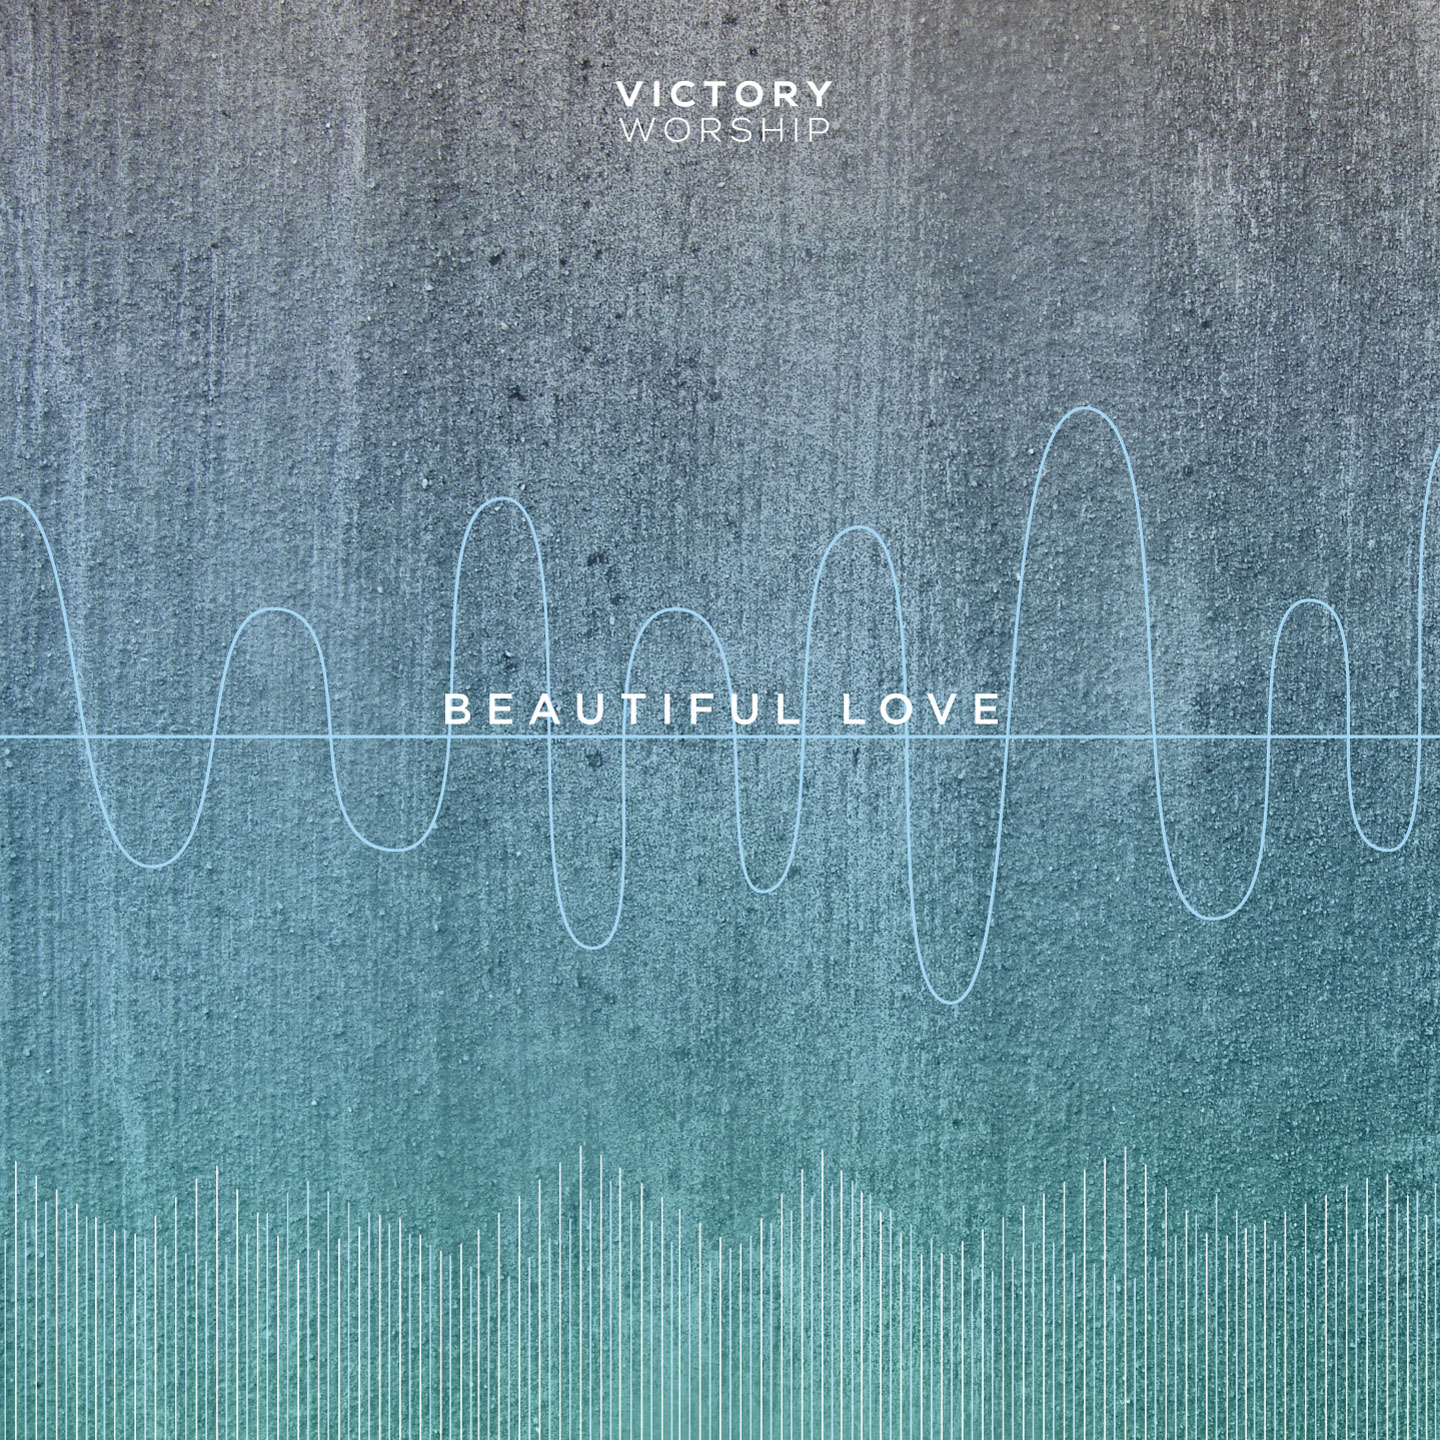 Victory Worship Releases Free Chord Sheets For Beautiful Love